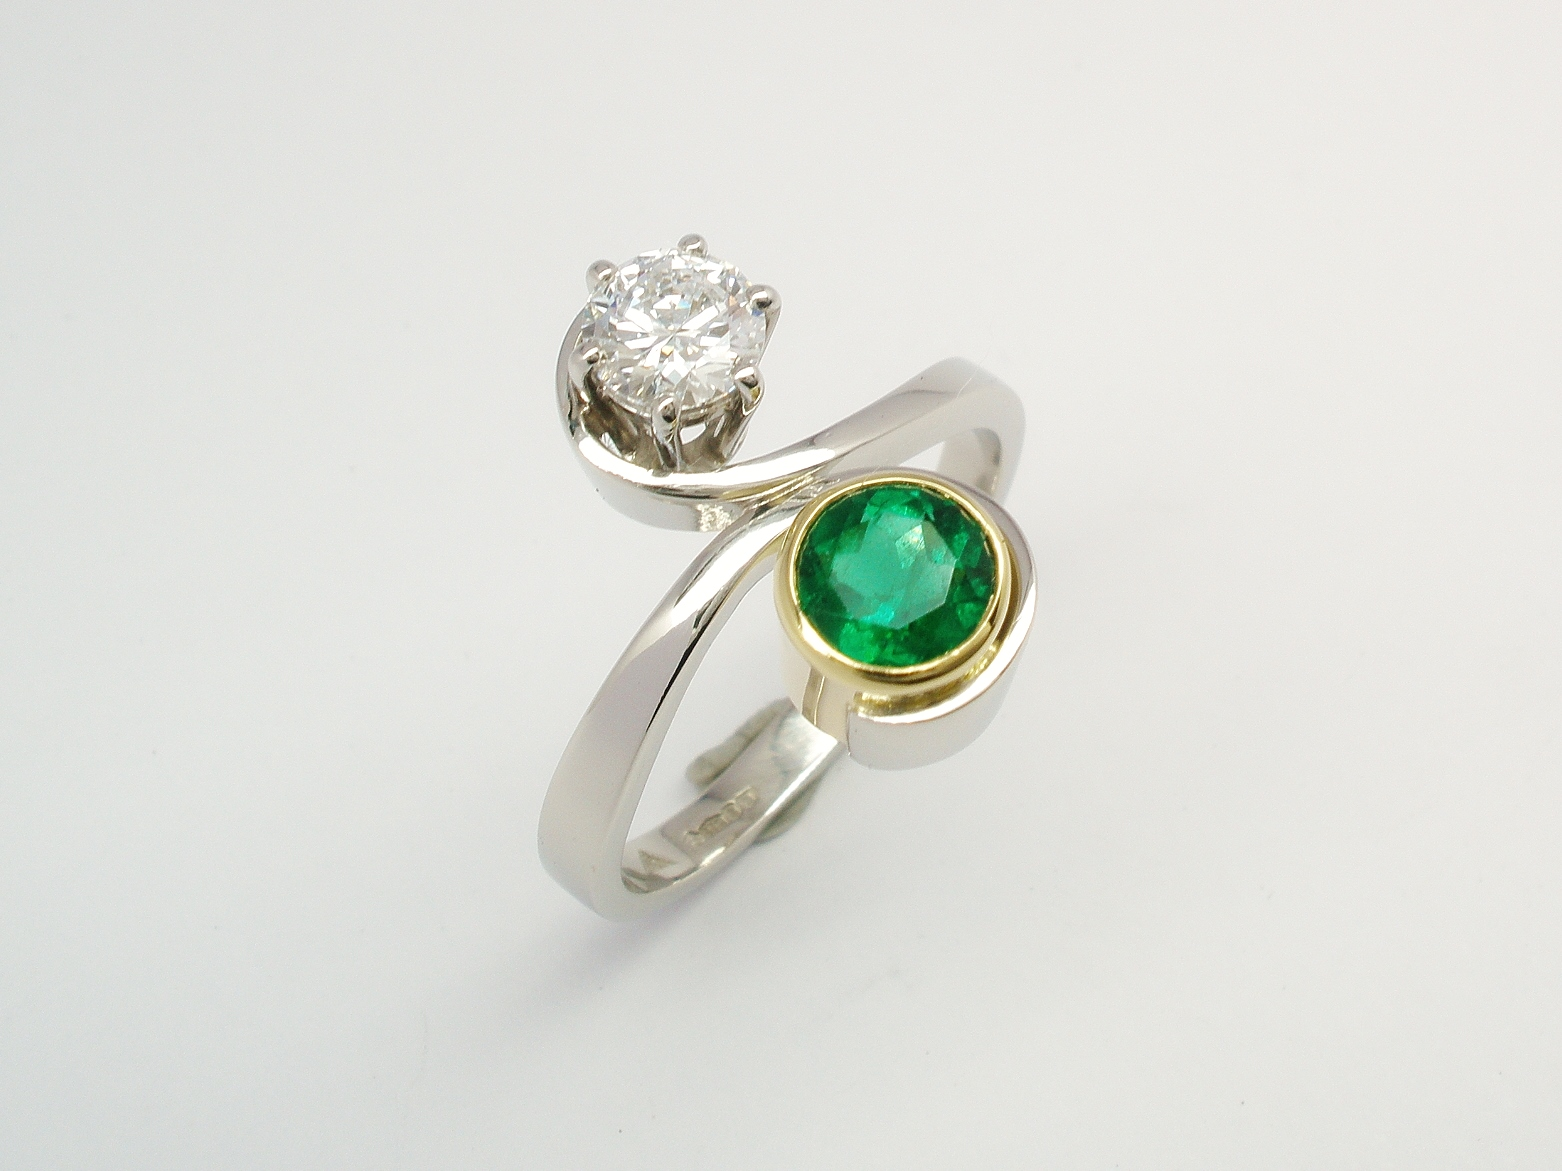 0.50ct 'D' Internally Flawless Diamond and round emerald 2 stone ring in the form of an initial 'S' mounted in platinum & 18ct yellow gold.